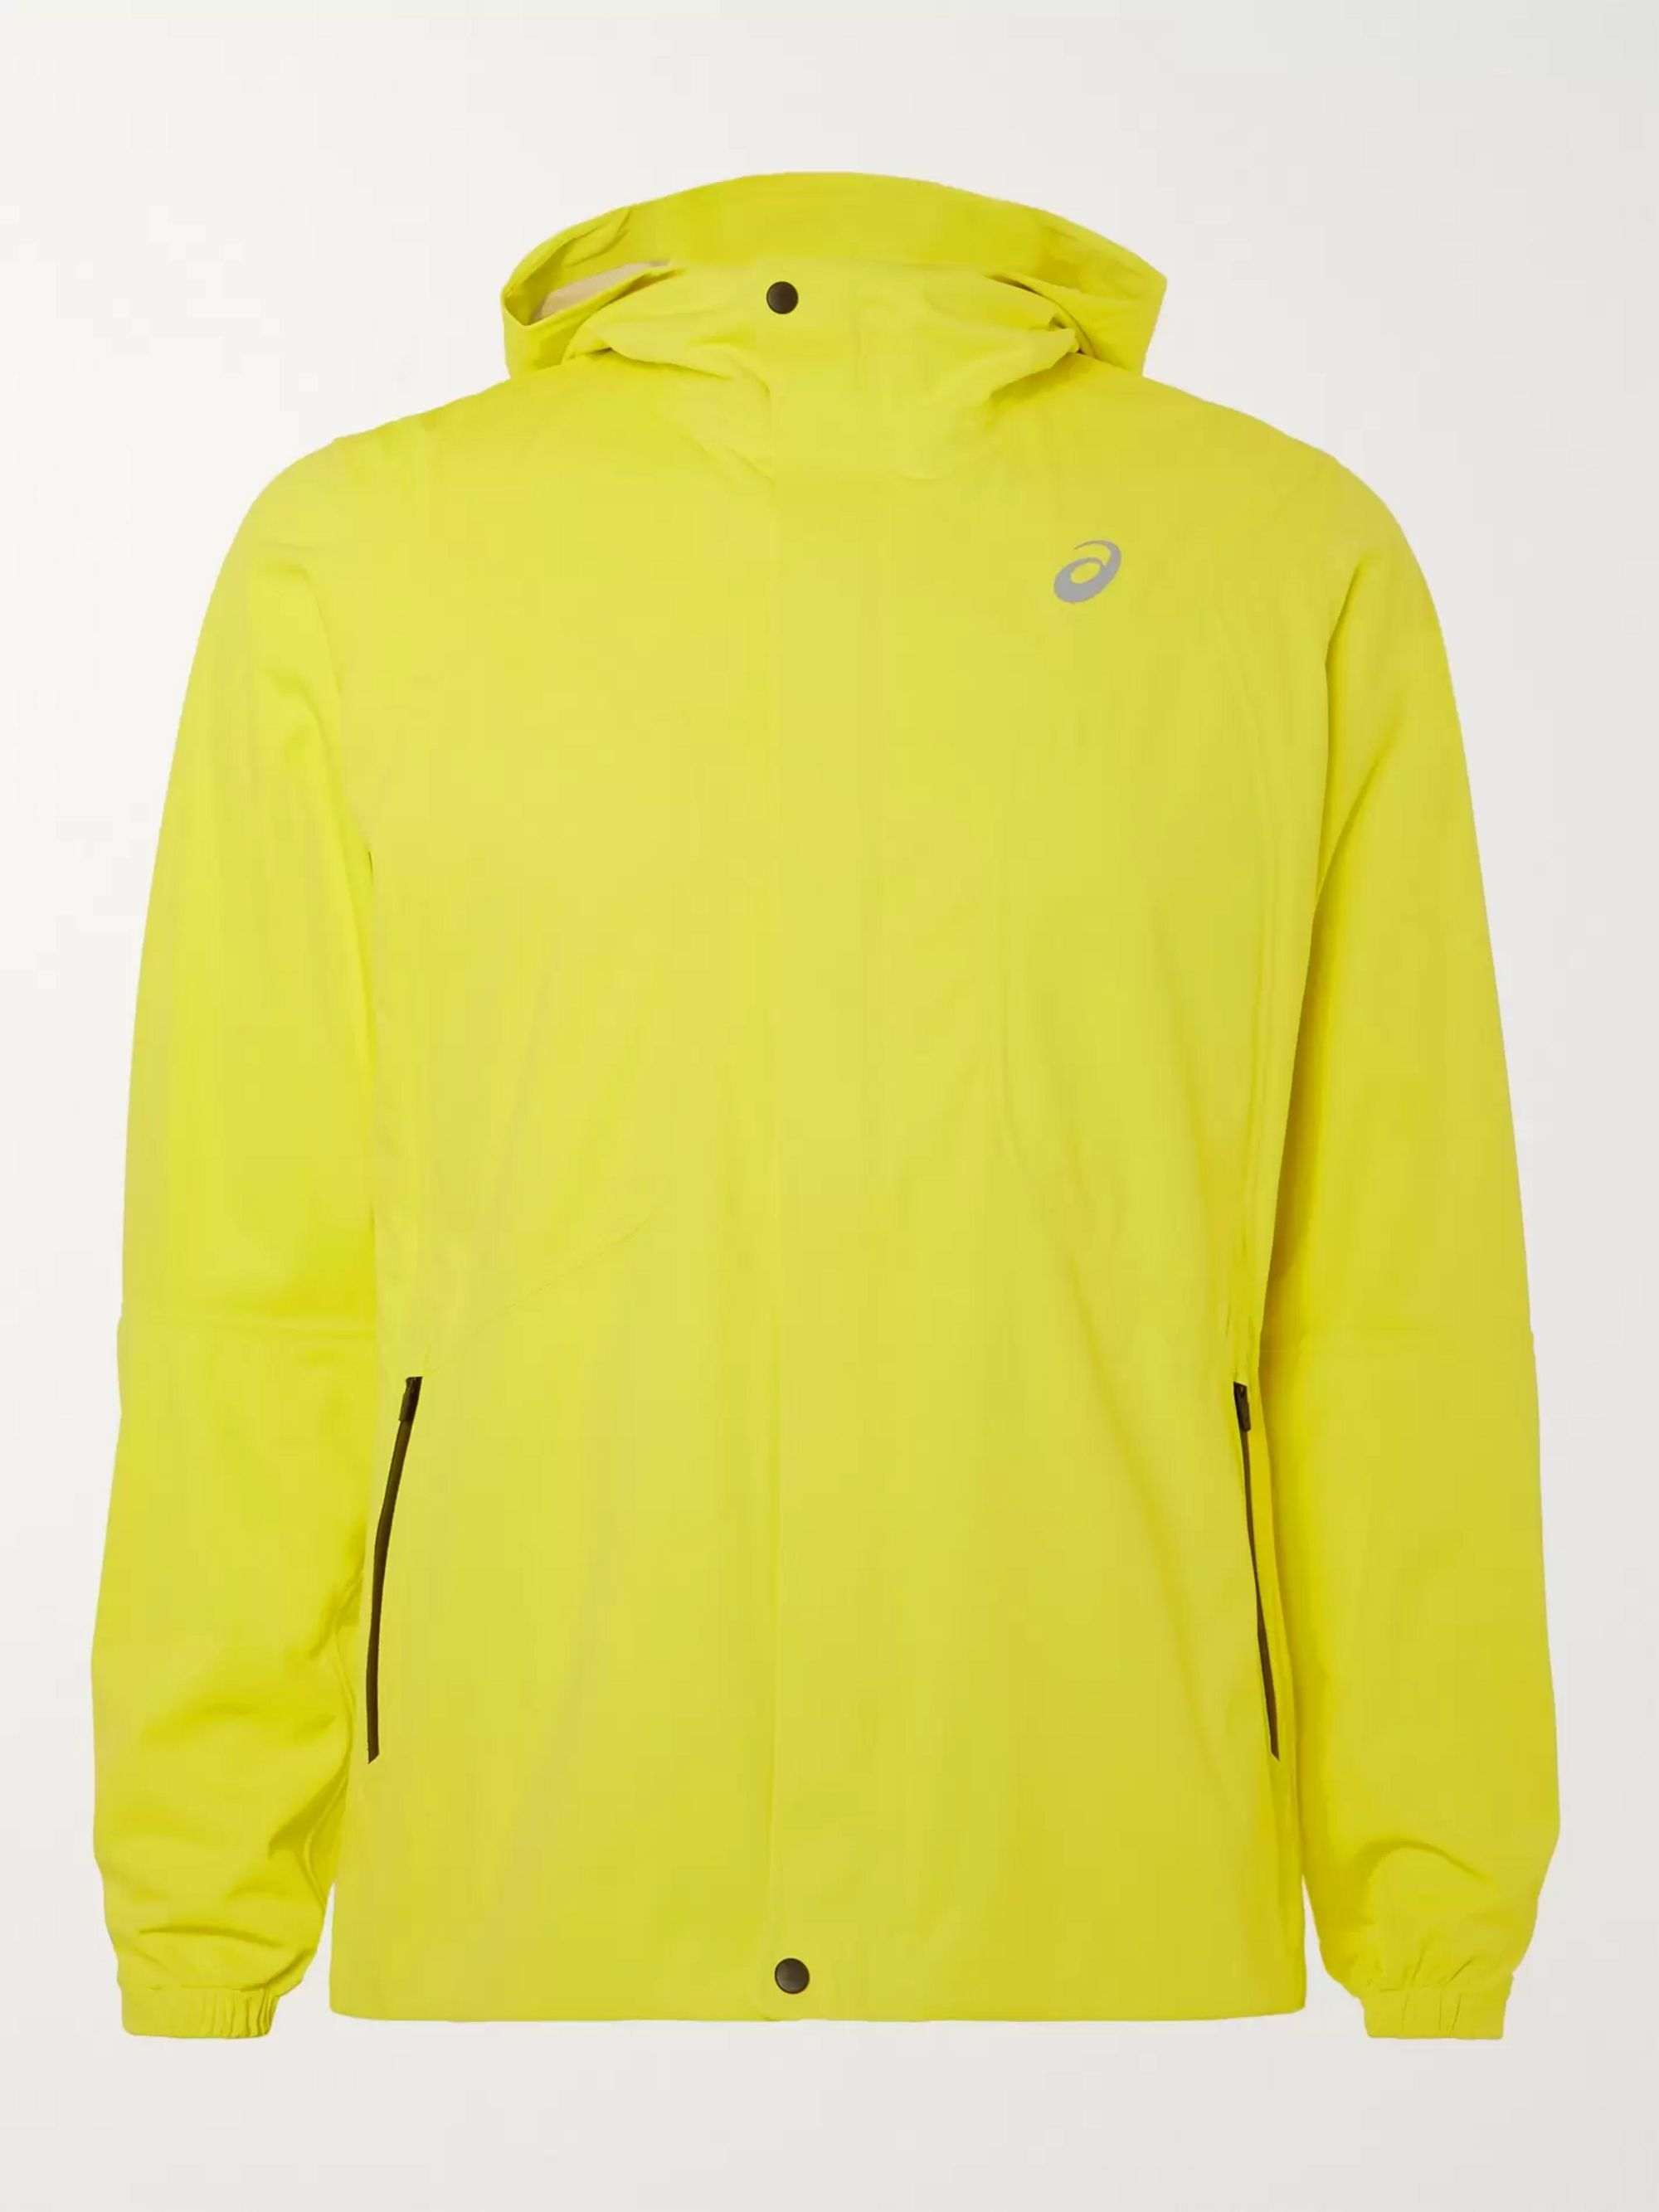 estrecho Dictadura fuegos artificiales  Yellow Accelerate Softshell Jacket | ASICS | MR PORTER